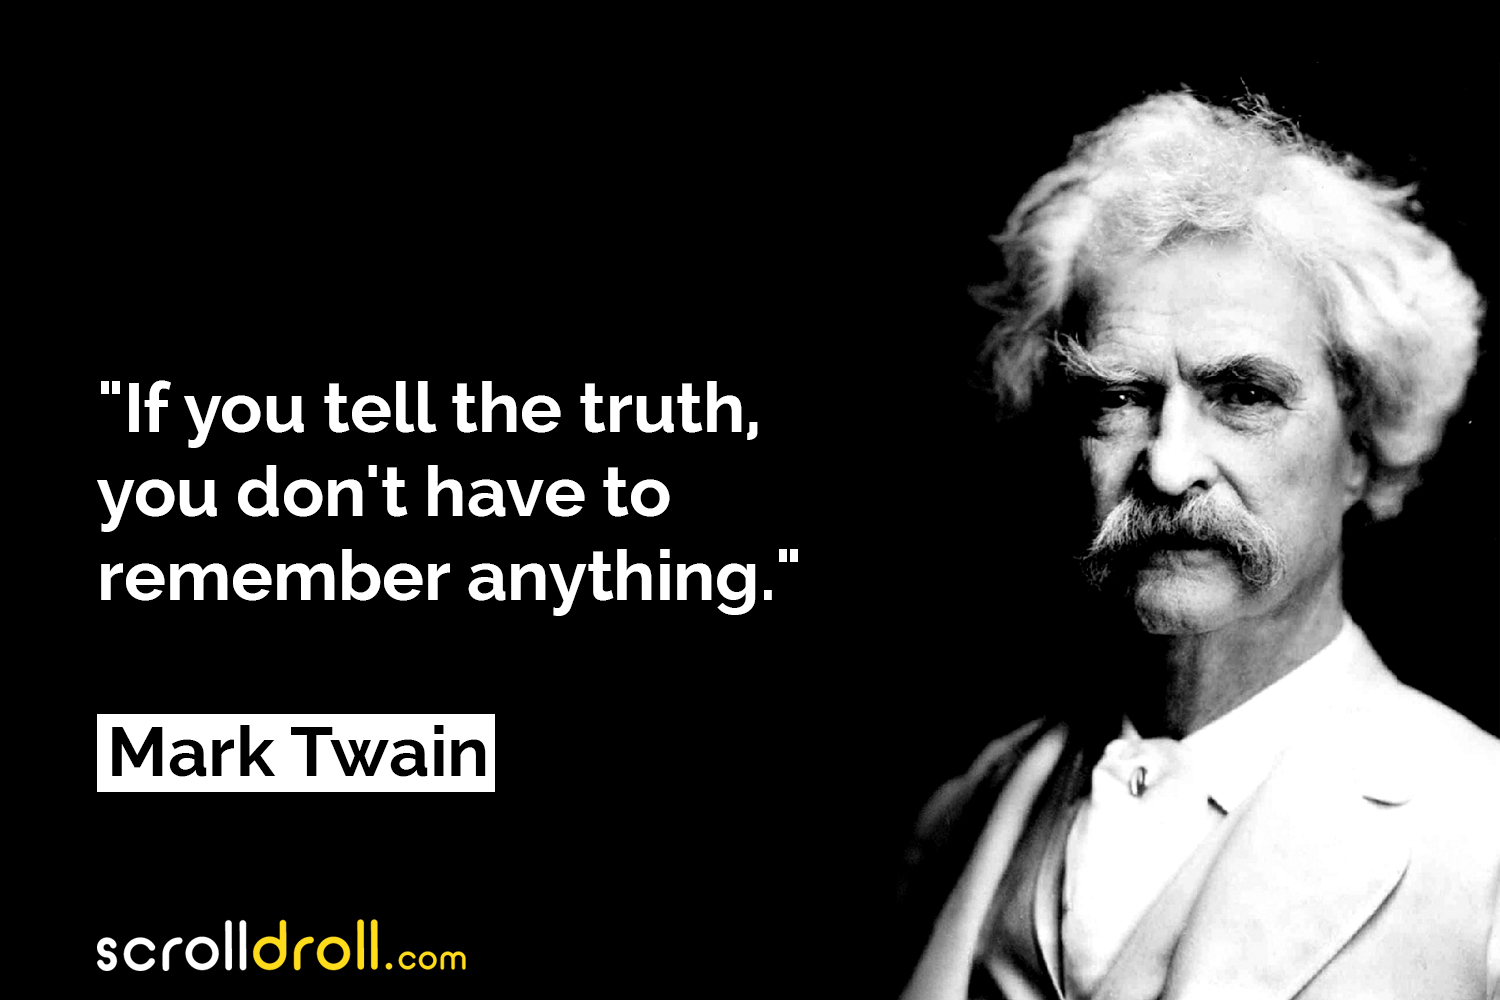 8 Best Mark Twain Quotes Full Of Wit, Inspiration, Humor & Life